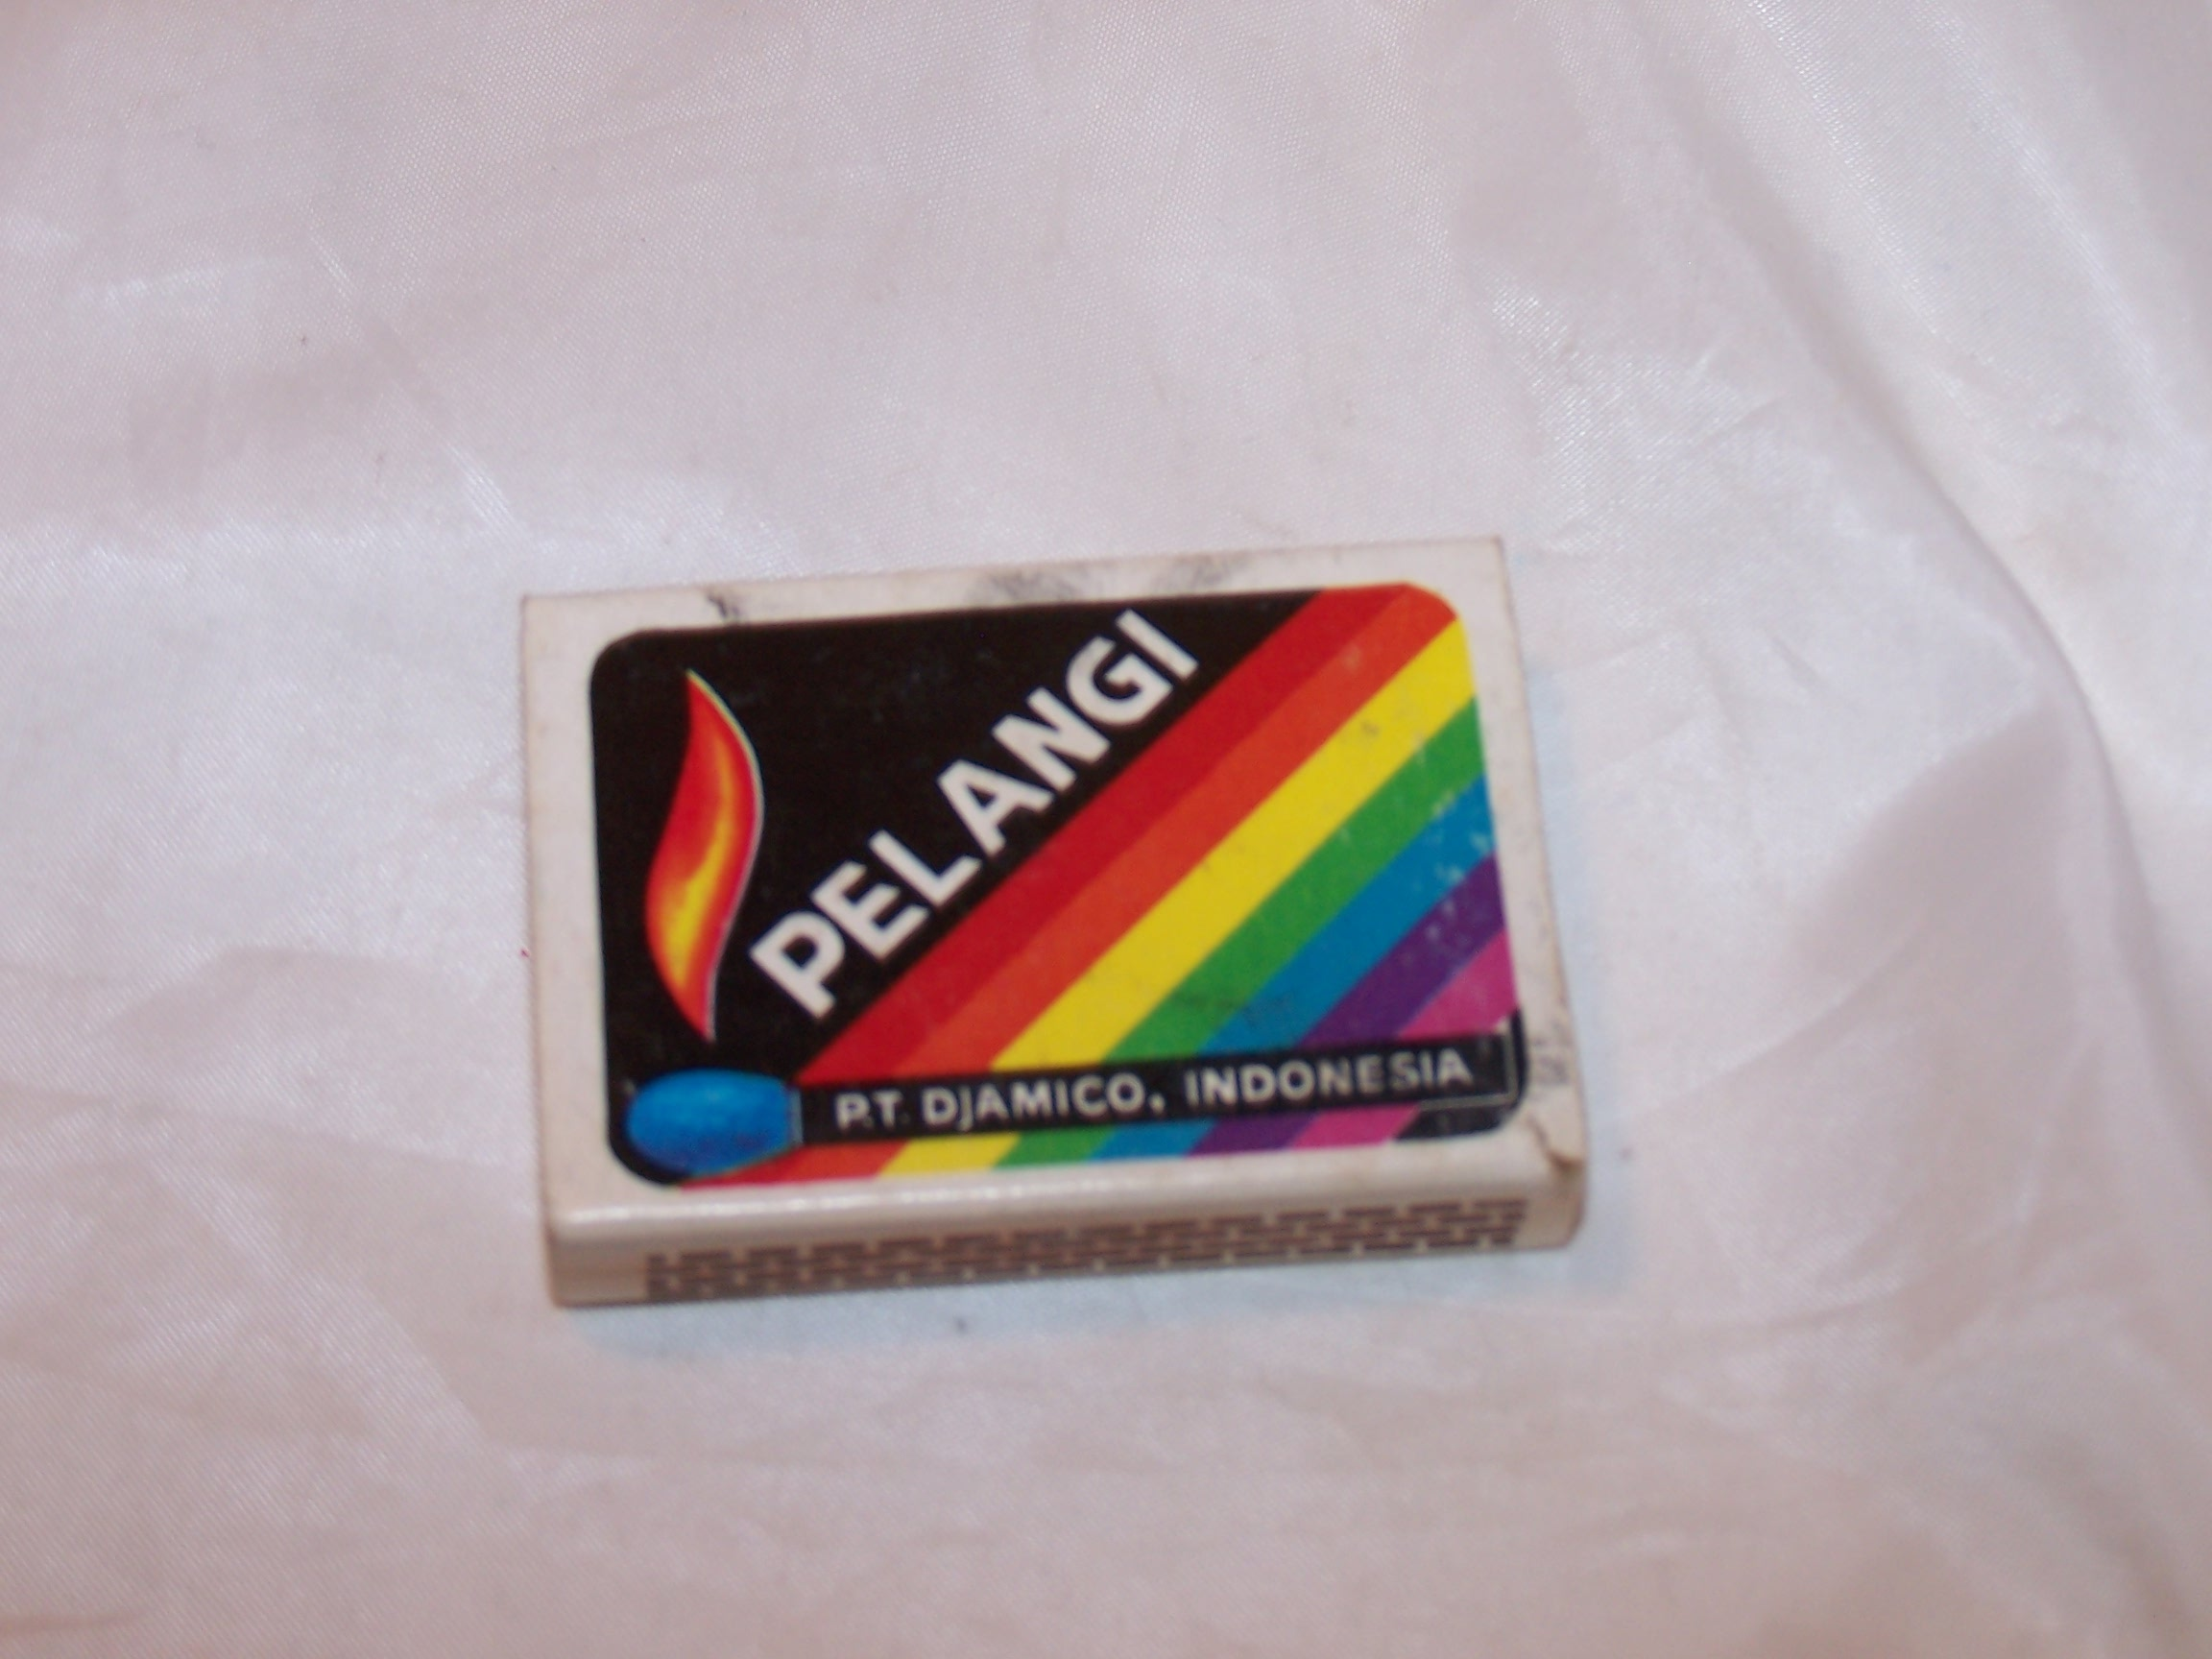 Image 2 of Rolling Stones Matchbox, Indonesia, Pelangi